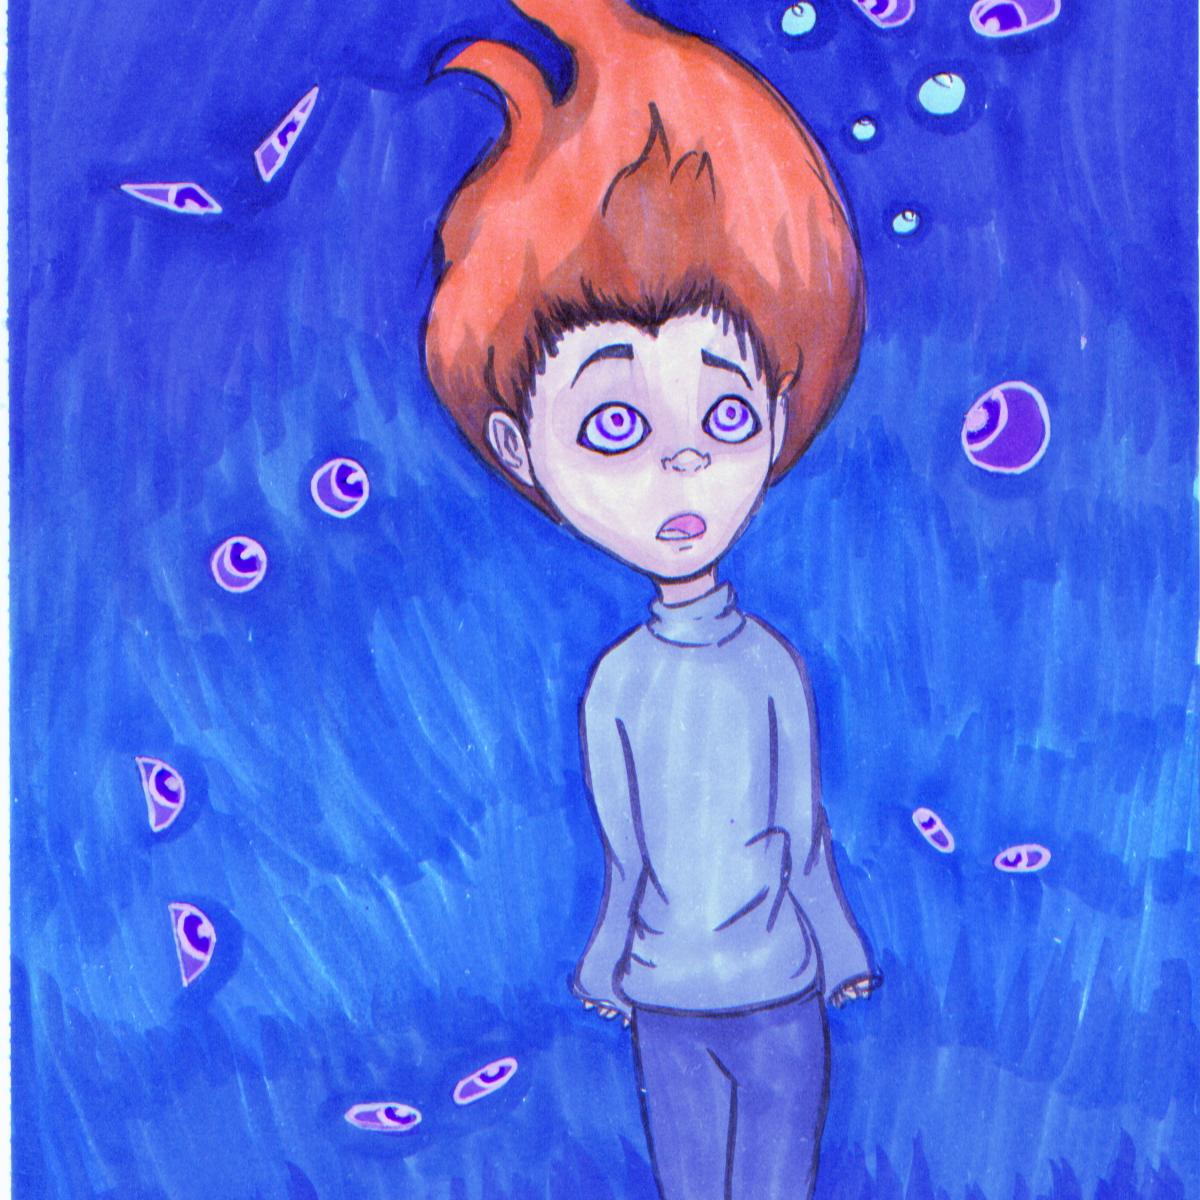 Ink drawing of young girl with red hair and wearing a sweater and jeans under water with her long hair floating.